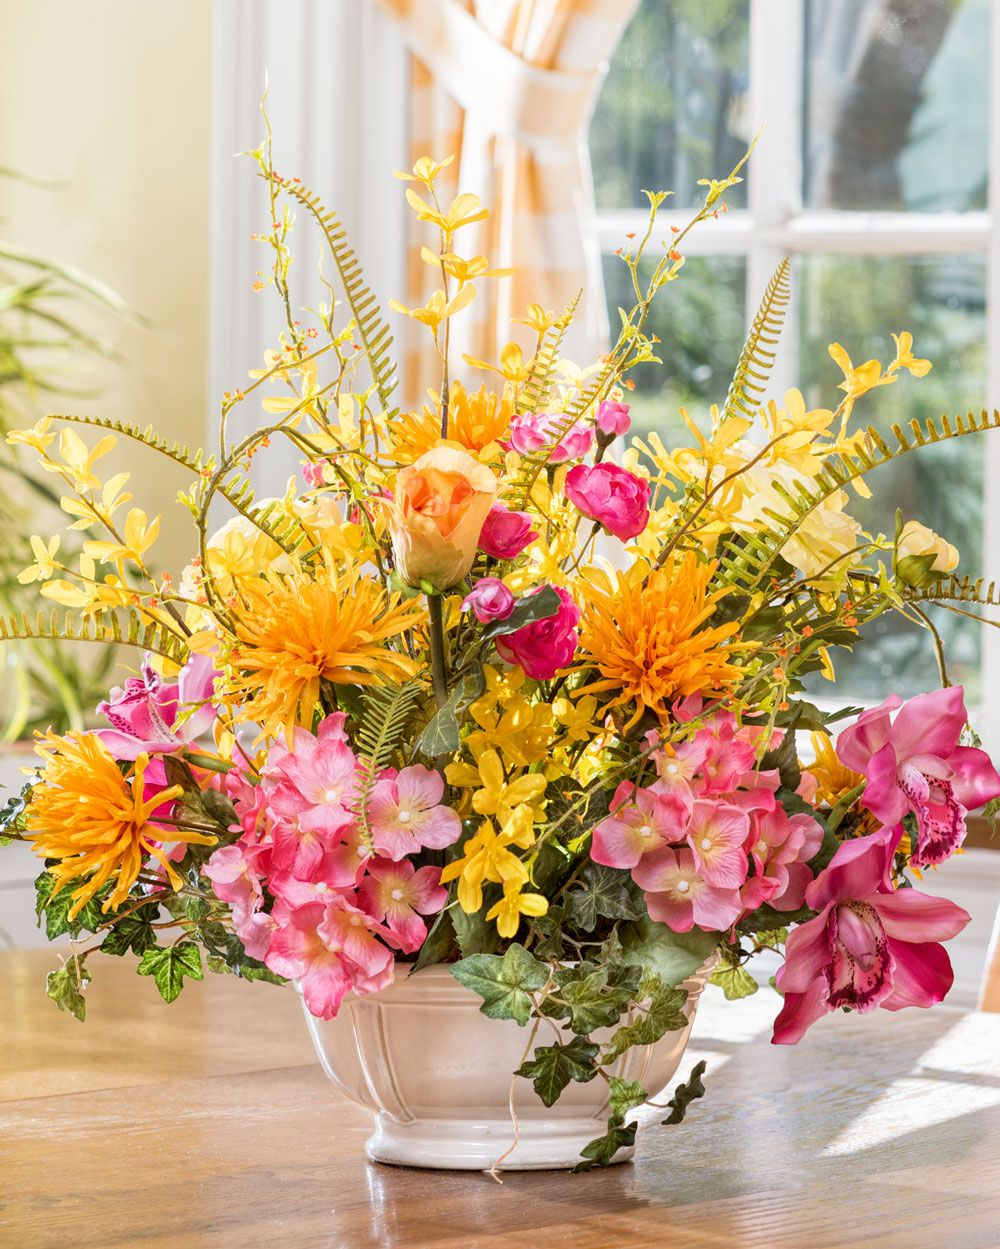 Enhance Your Dining Experience With A Centerpiece Design